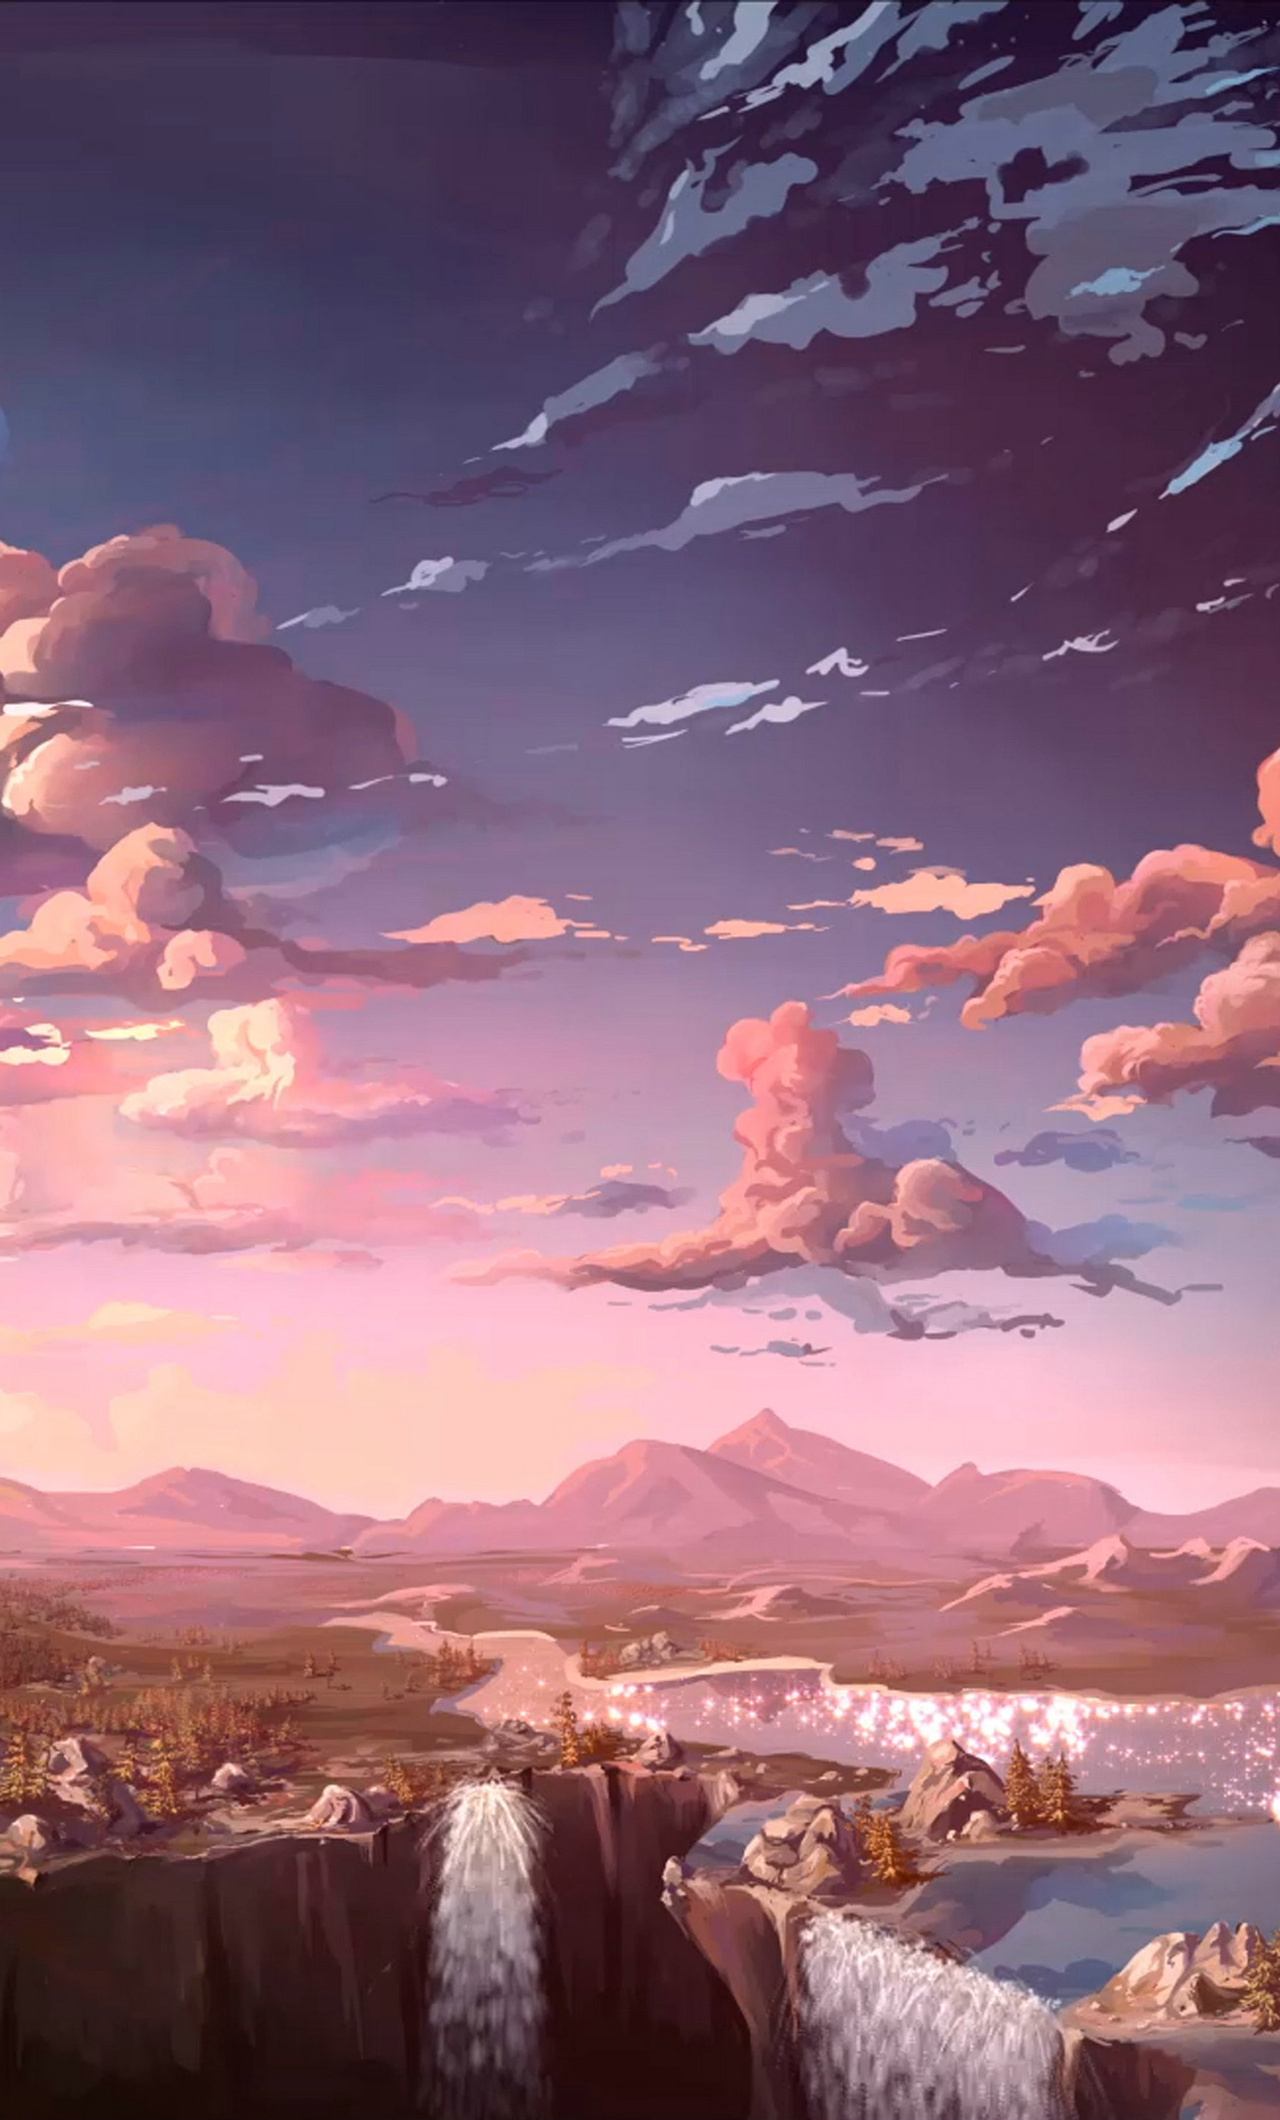 1280x2120 anime landscape waterfall cloud 5k iphone 6 hd - 5k anime wallpaper ...